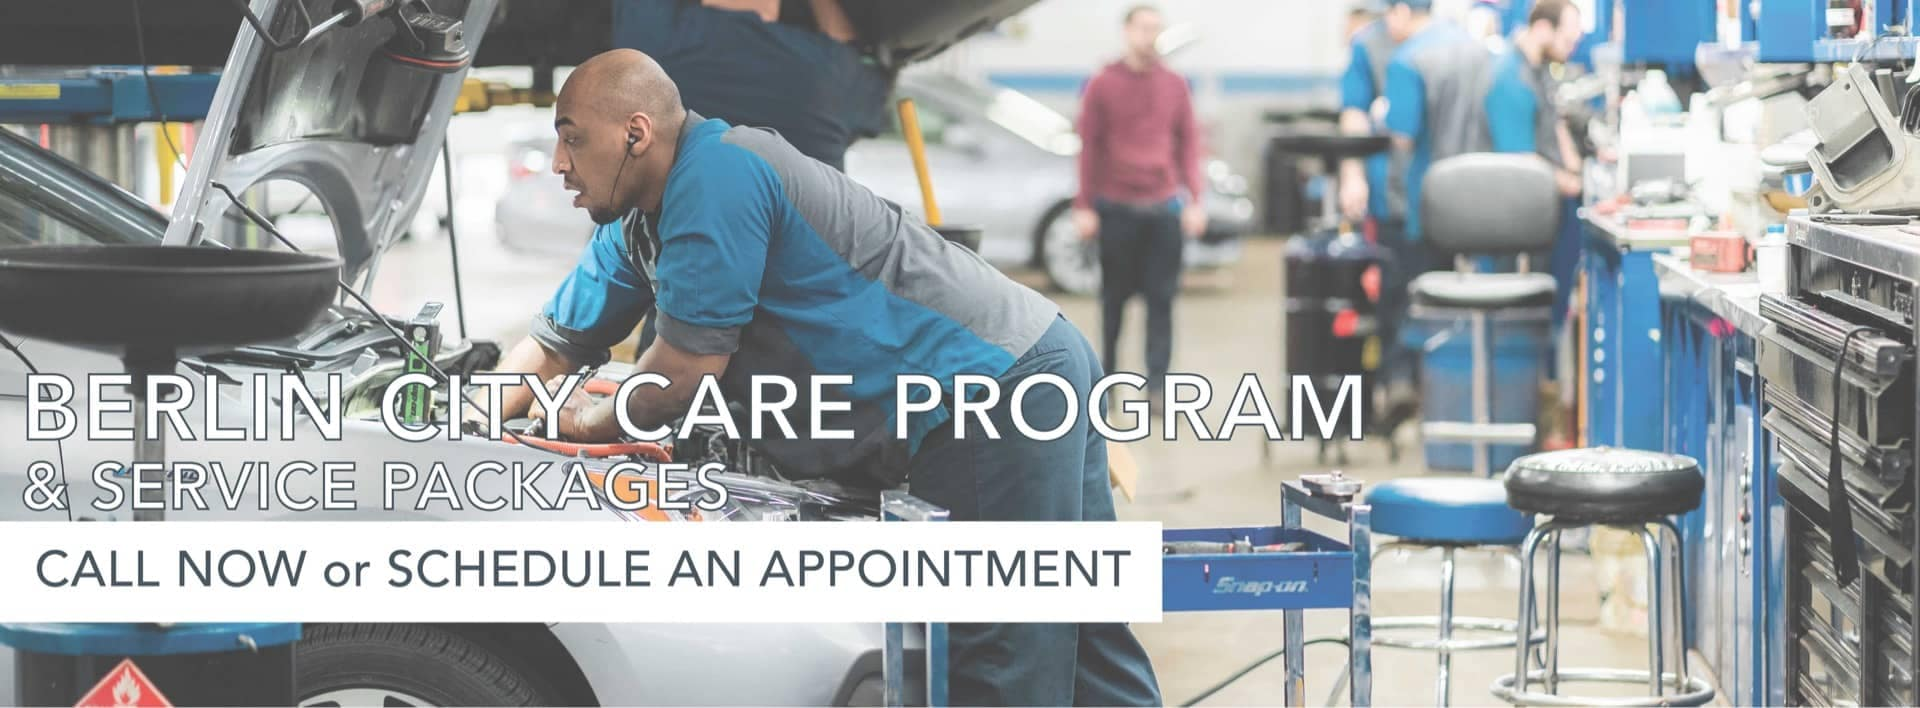 Berlin City Care Program and Service Packages